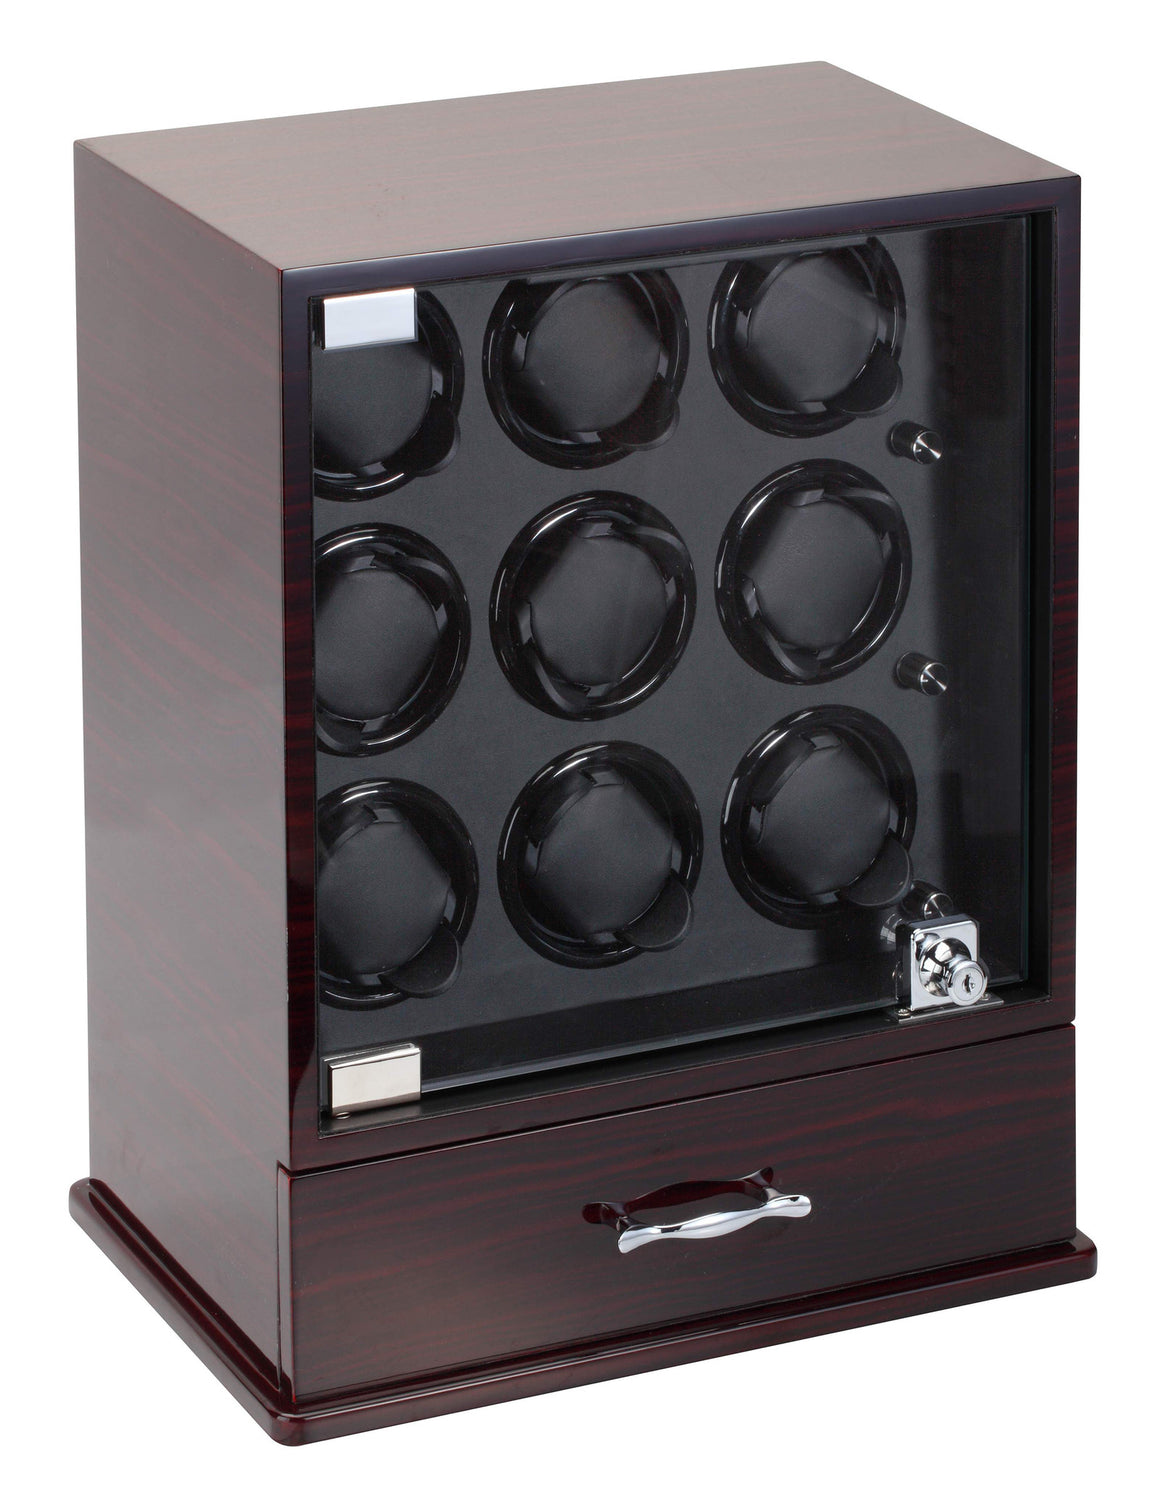 Diplomat Estate Collection Ebony Wood Nine Watch Winder - Watch Box Co. - 1